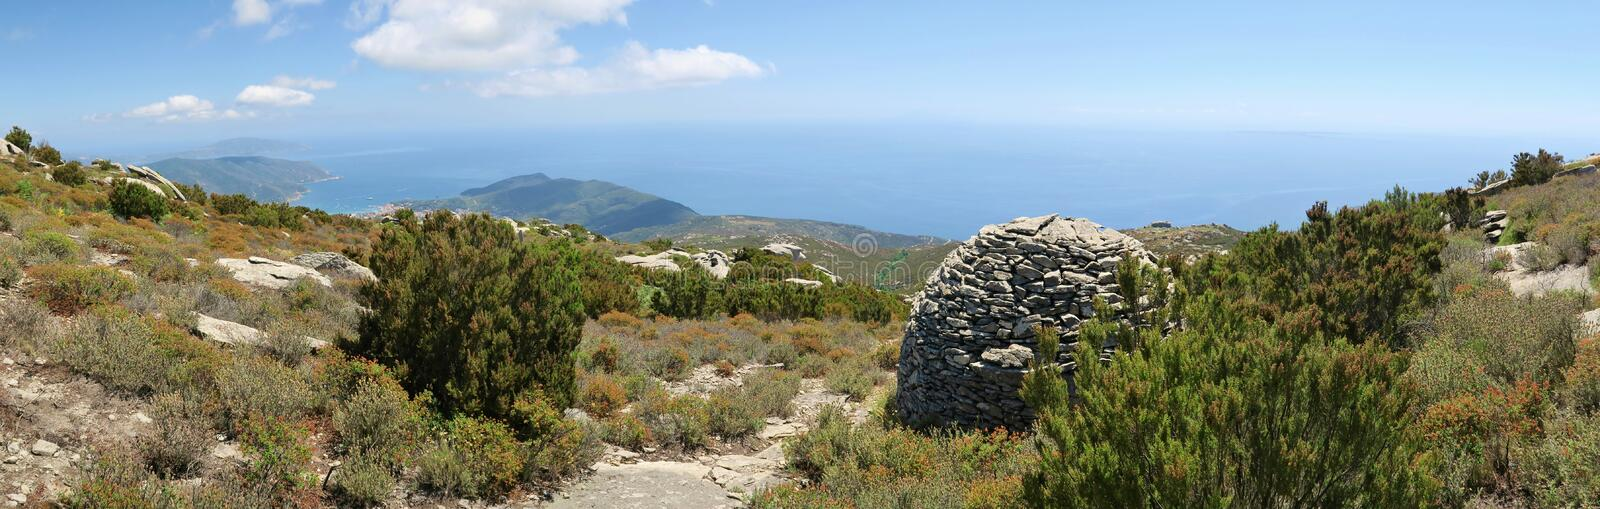 South view from the slope of Monte Capanne on the island Elba stock images